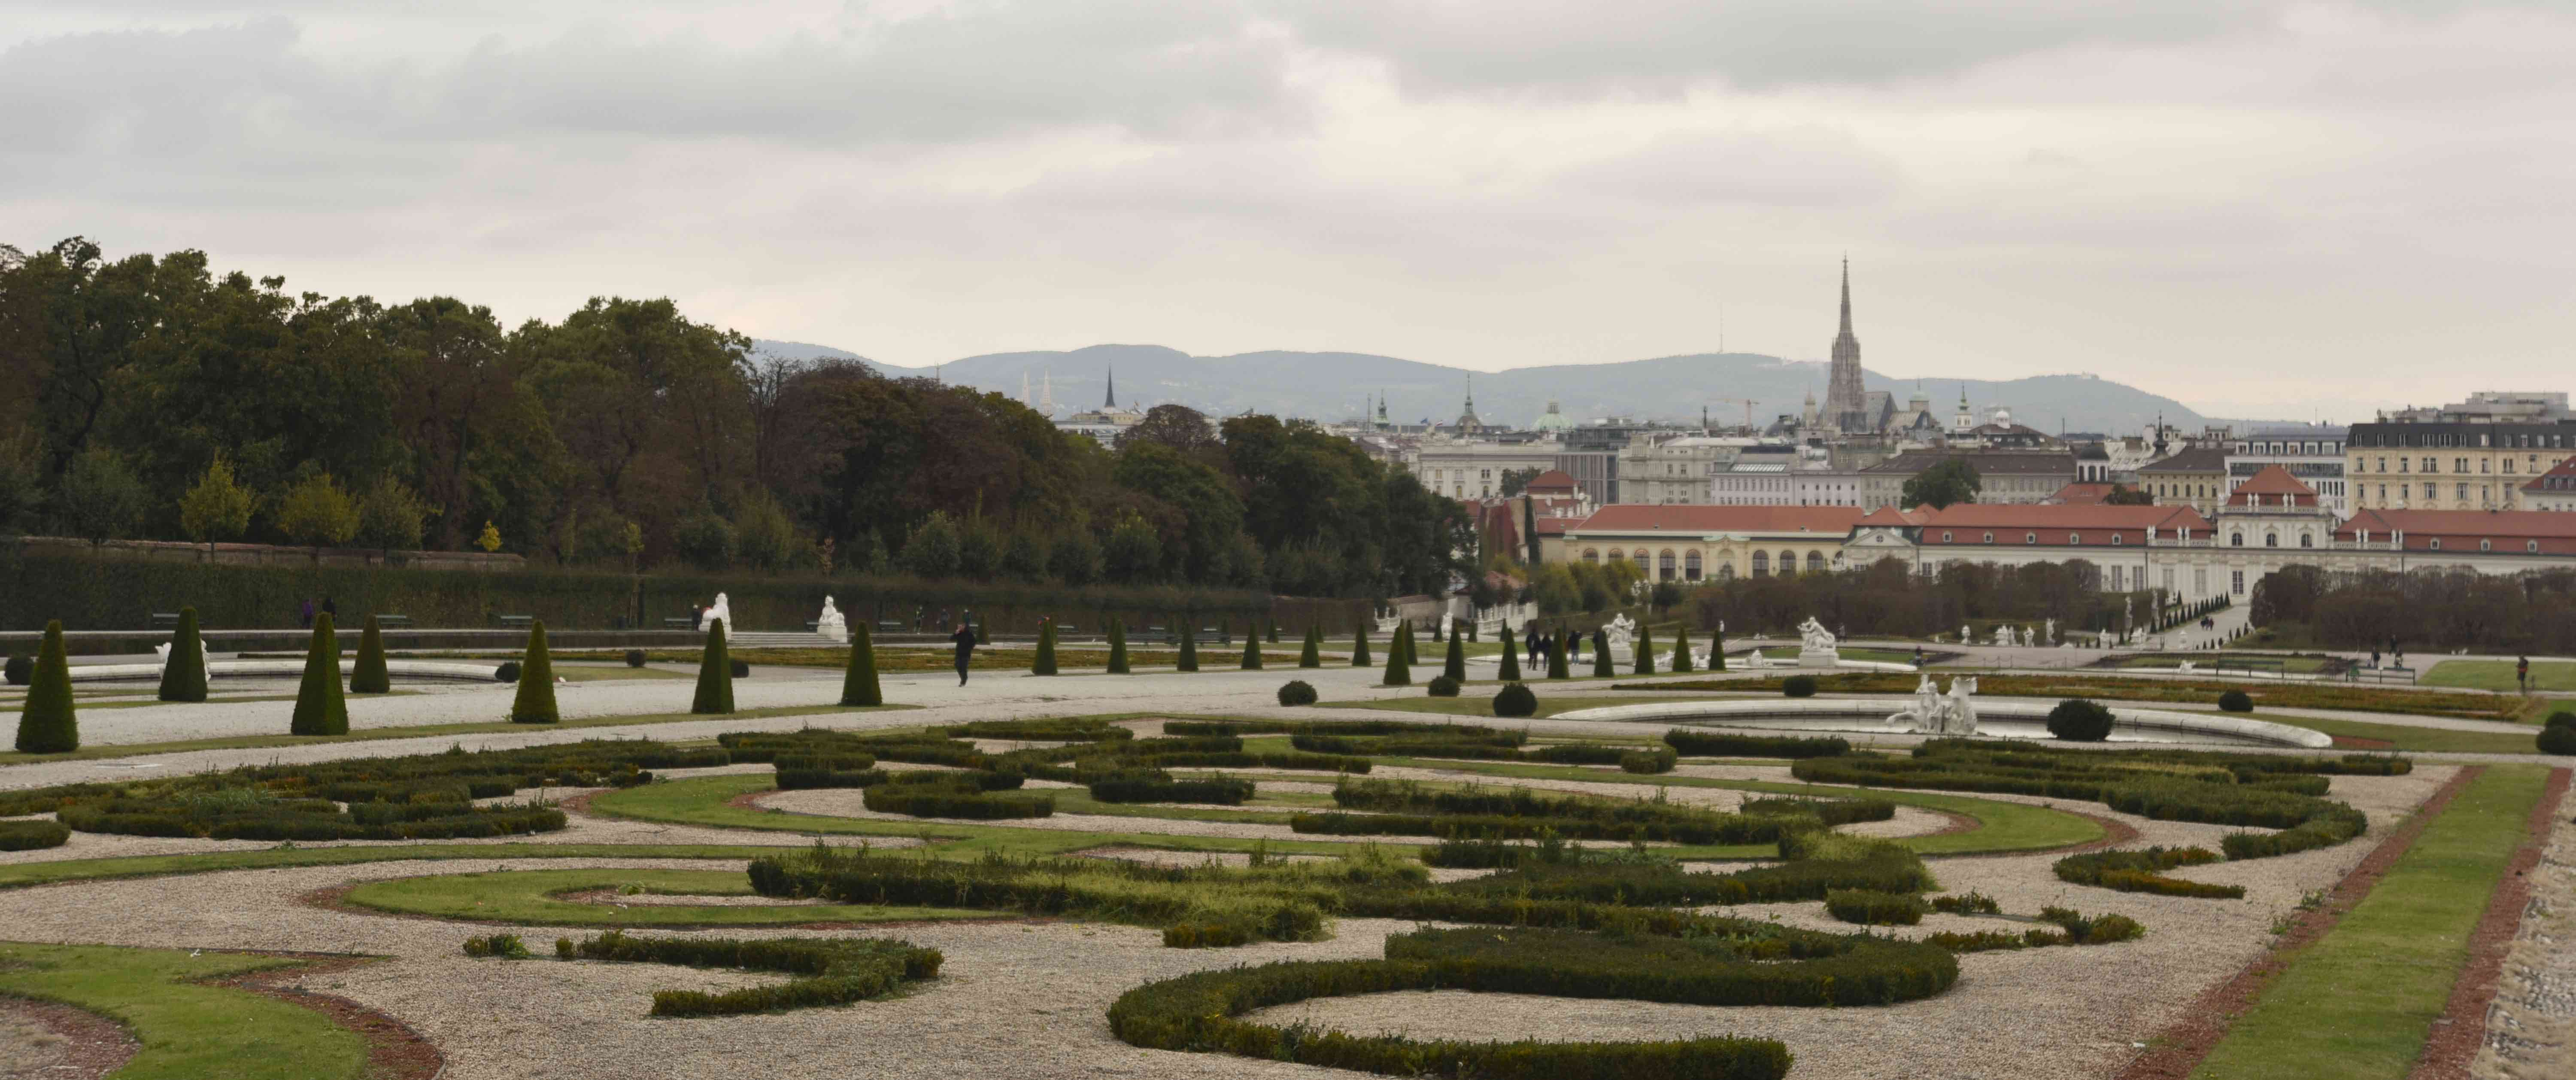 Vienna from the Belvedere